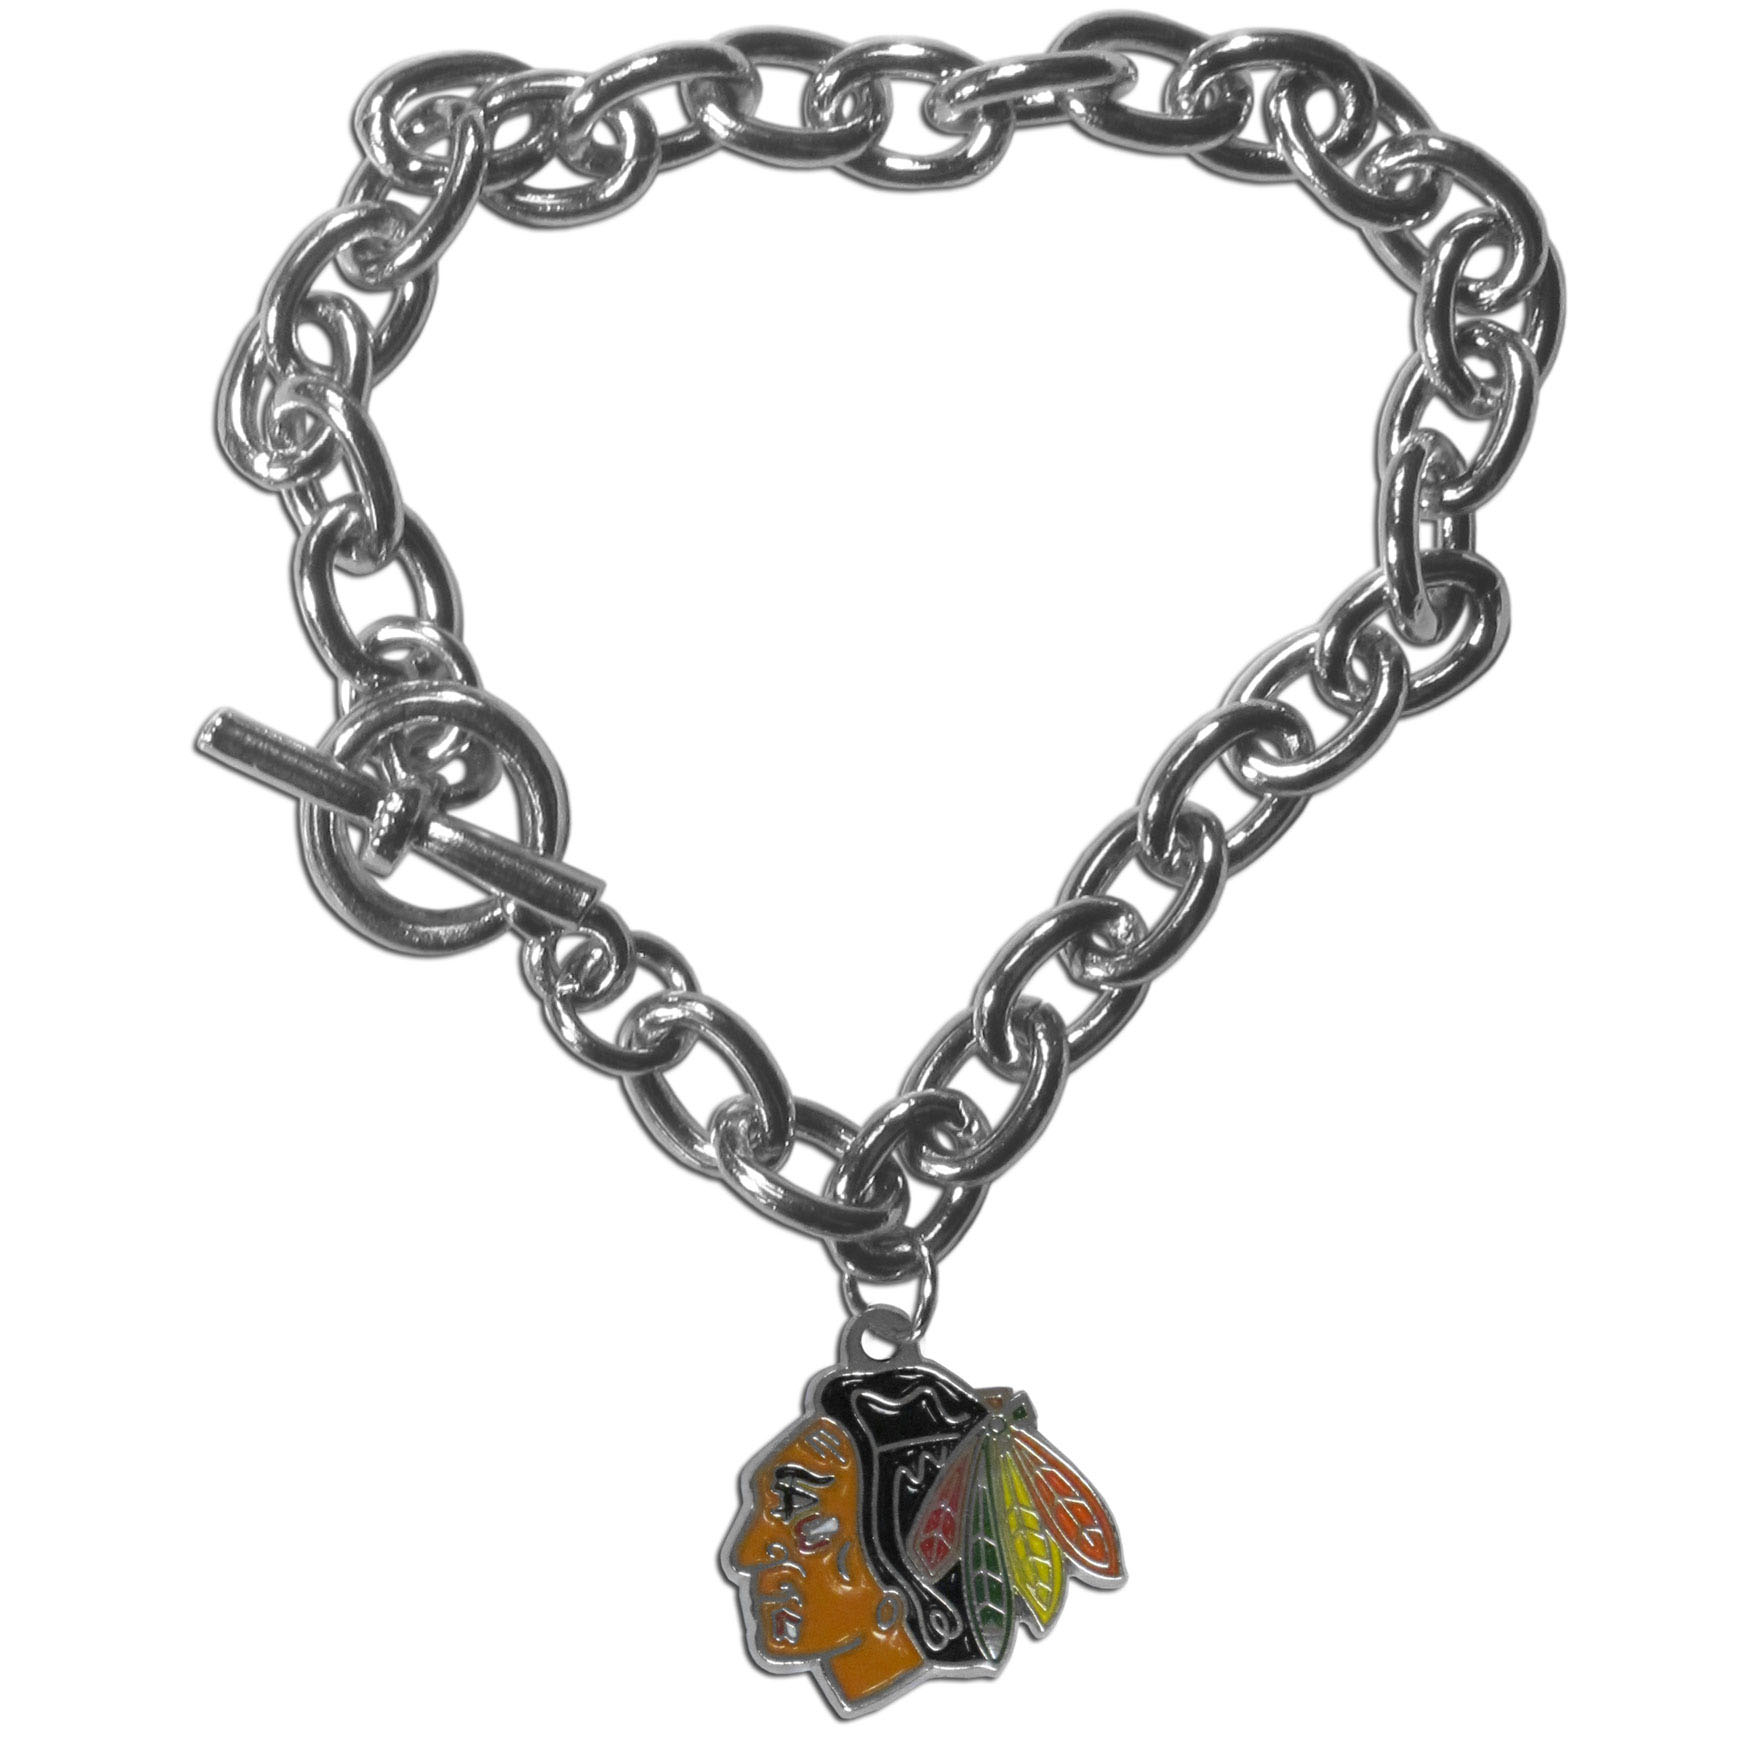 Chicago Blackhawks® Charm Chain Bracelet - Our classic single charm bracelet is a great way to show off your team pride! The 7.5 inch large link chain features a high polish Chicago Blackhawks® charm and features a toggle clasp which makes it super easy to take on and off.